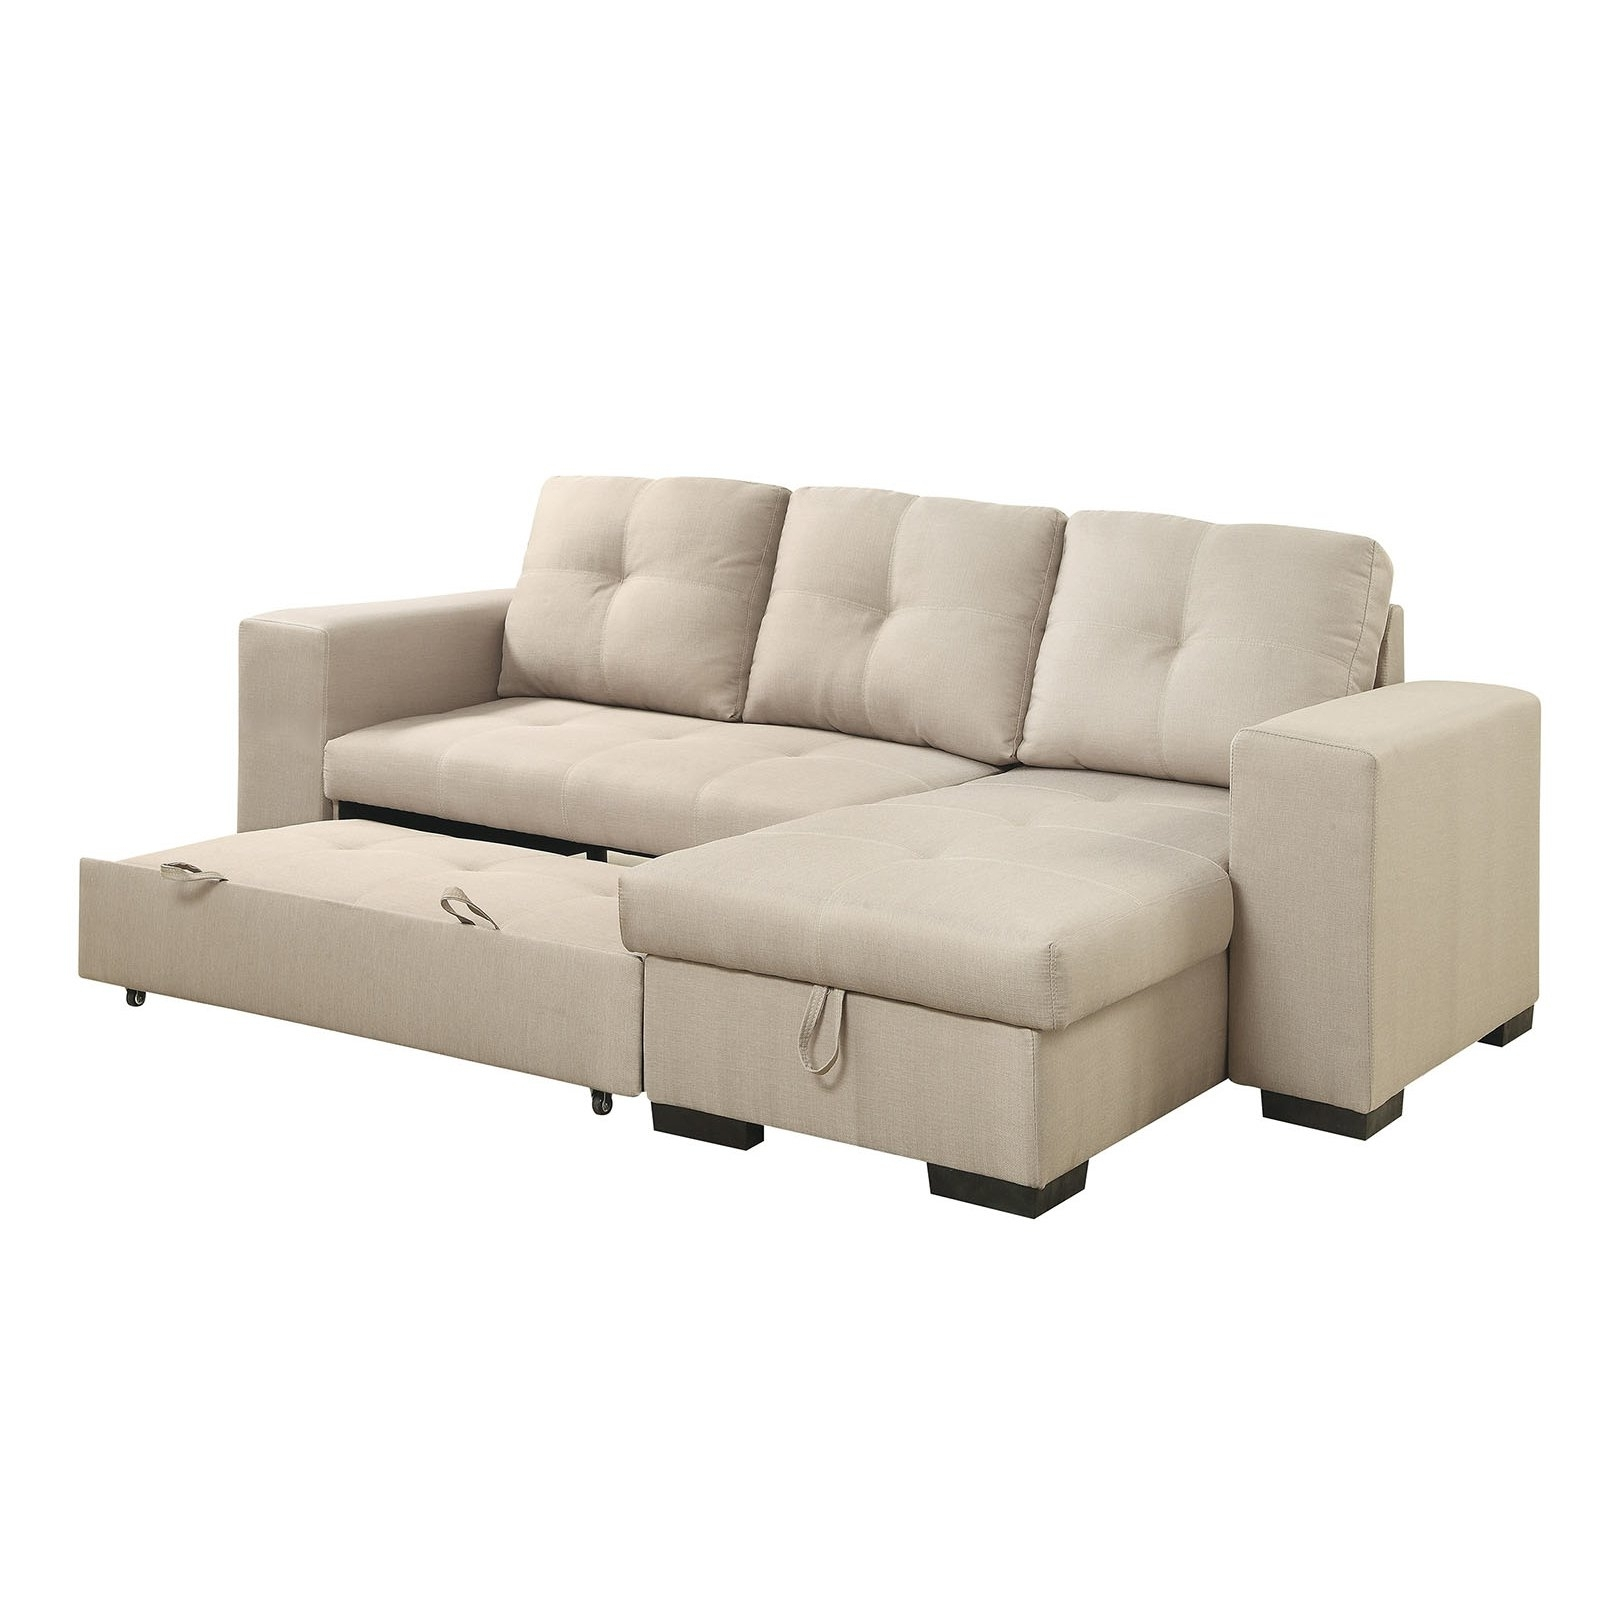 Cream Chaise Lounges Throughout Newest Living Room Lounger – Zhis (View 2 of 15)